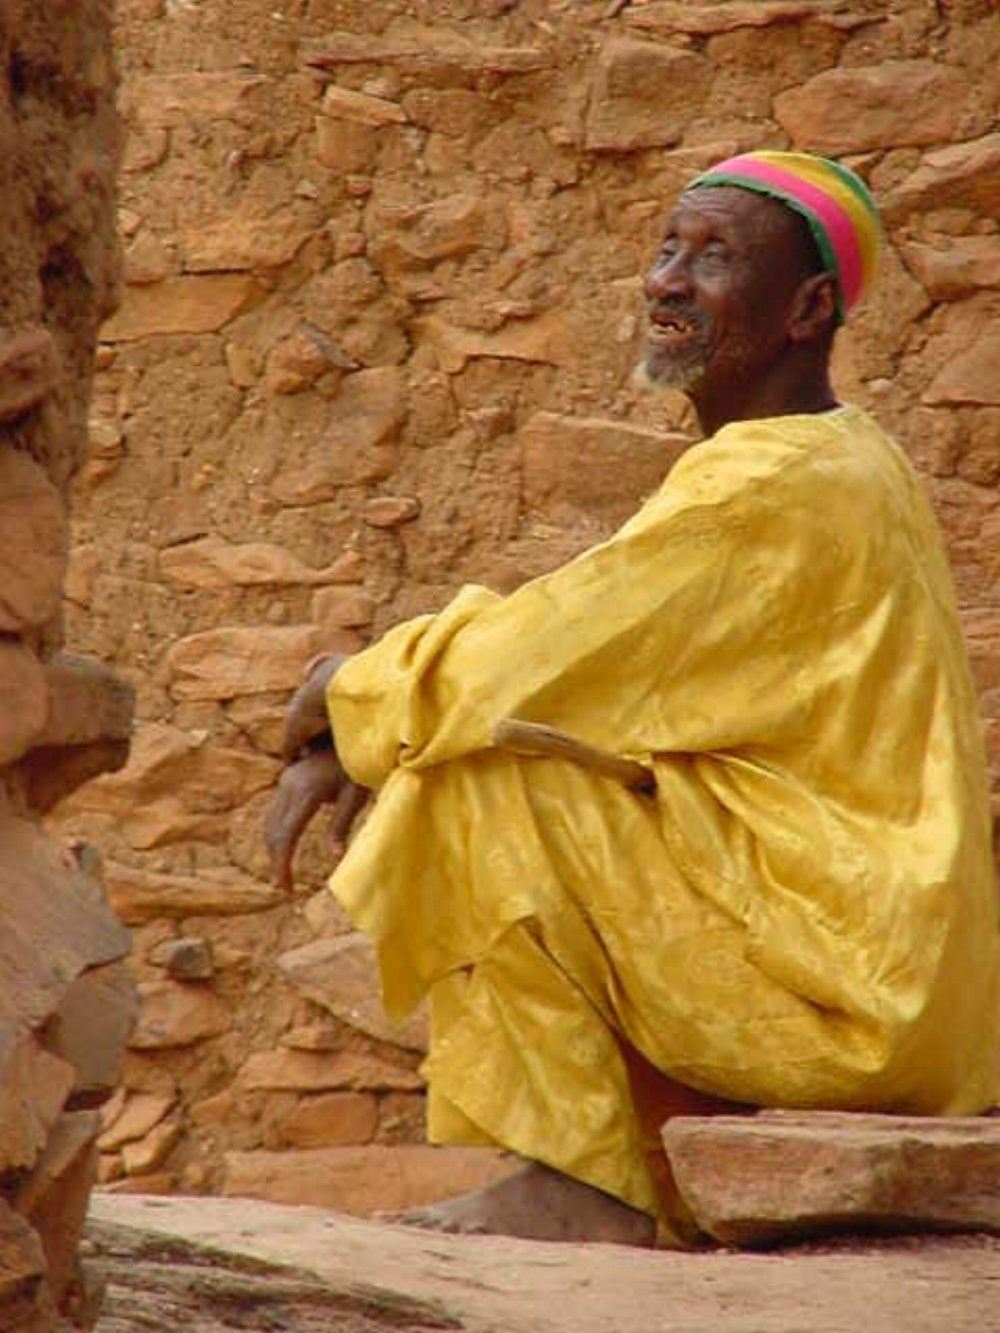 A Dogon village elder